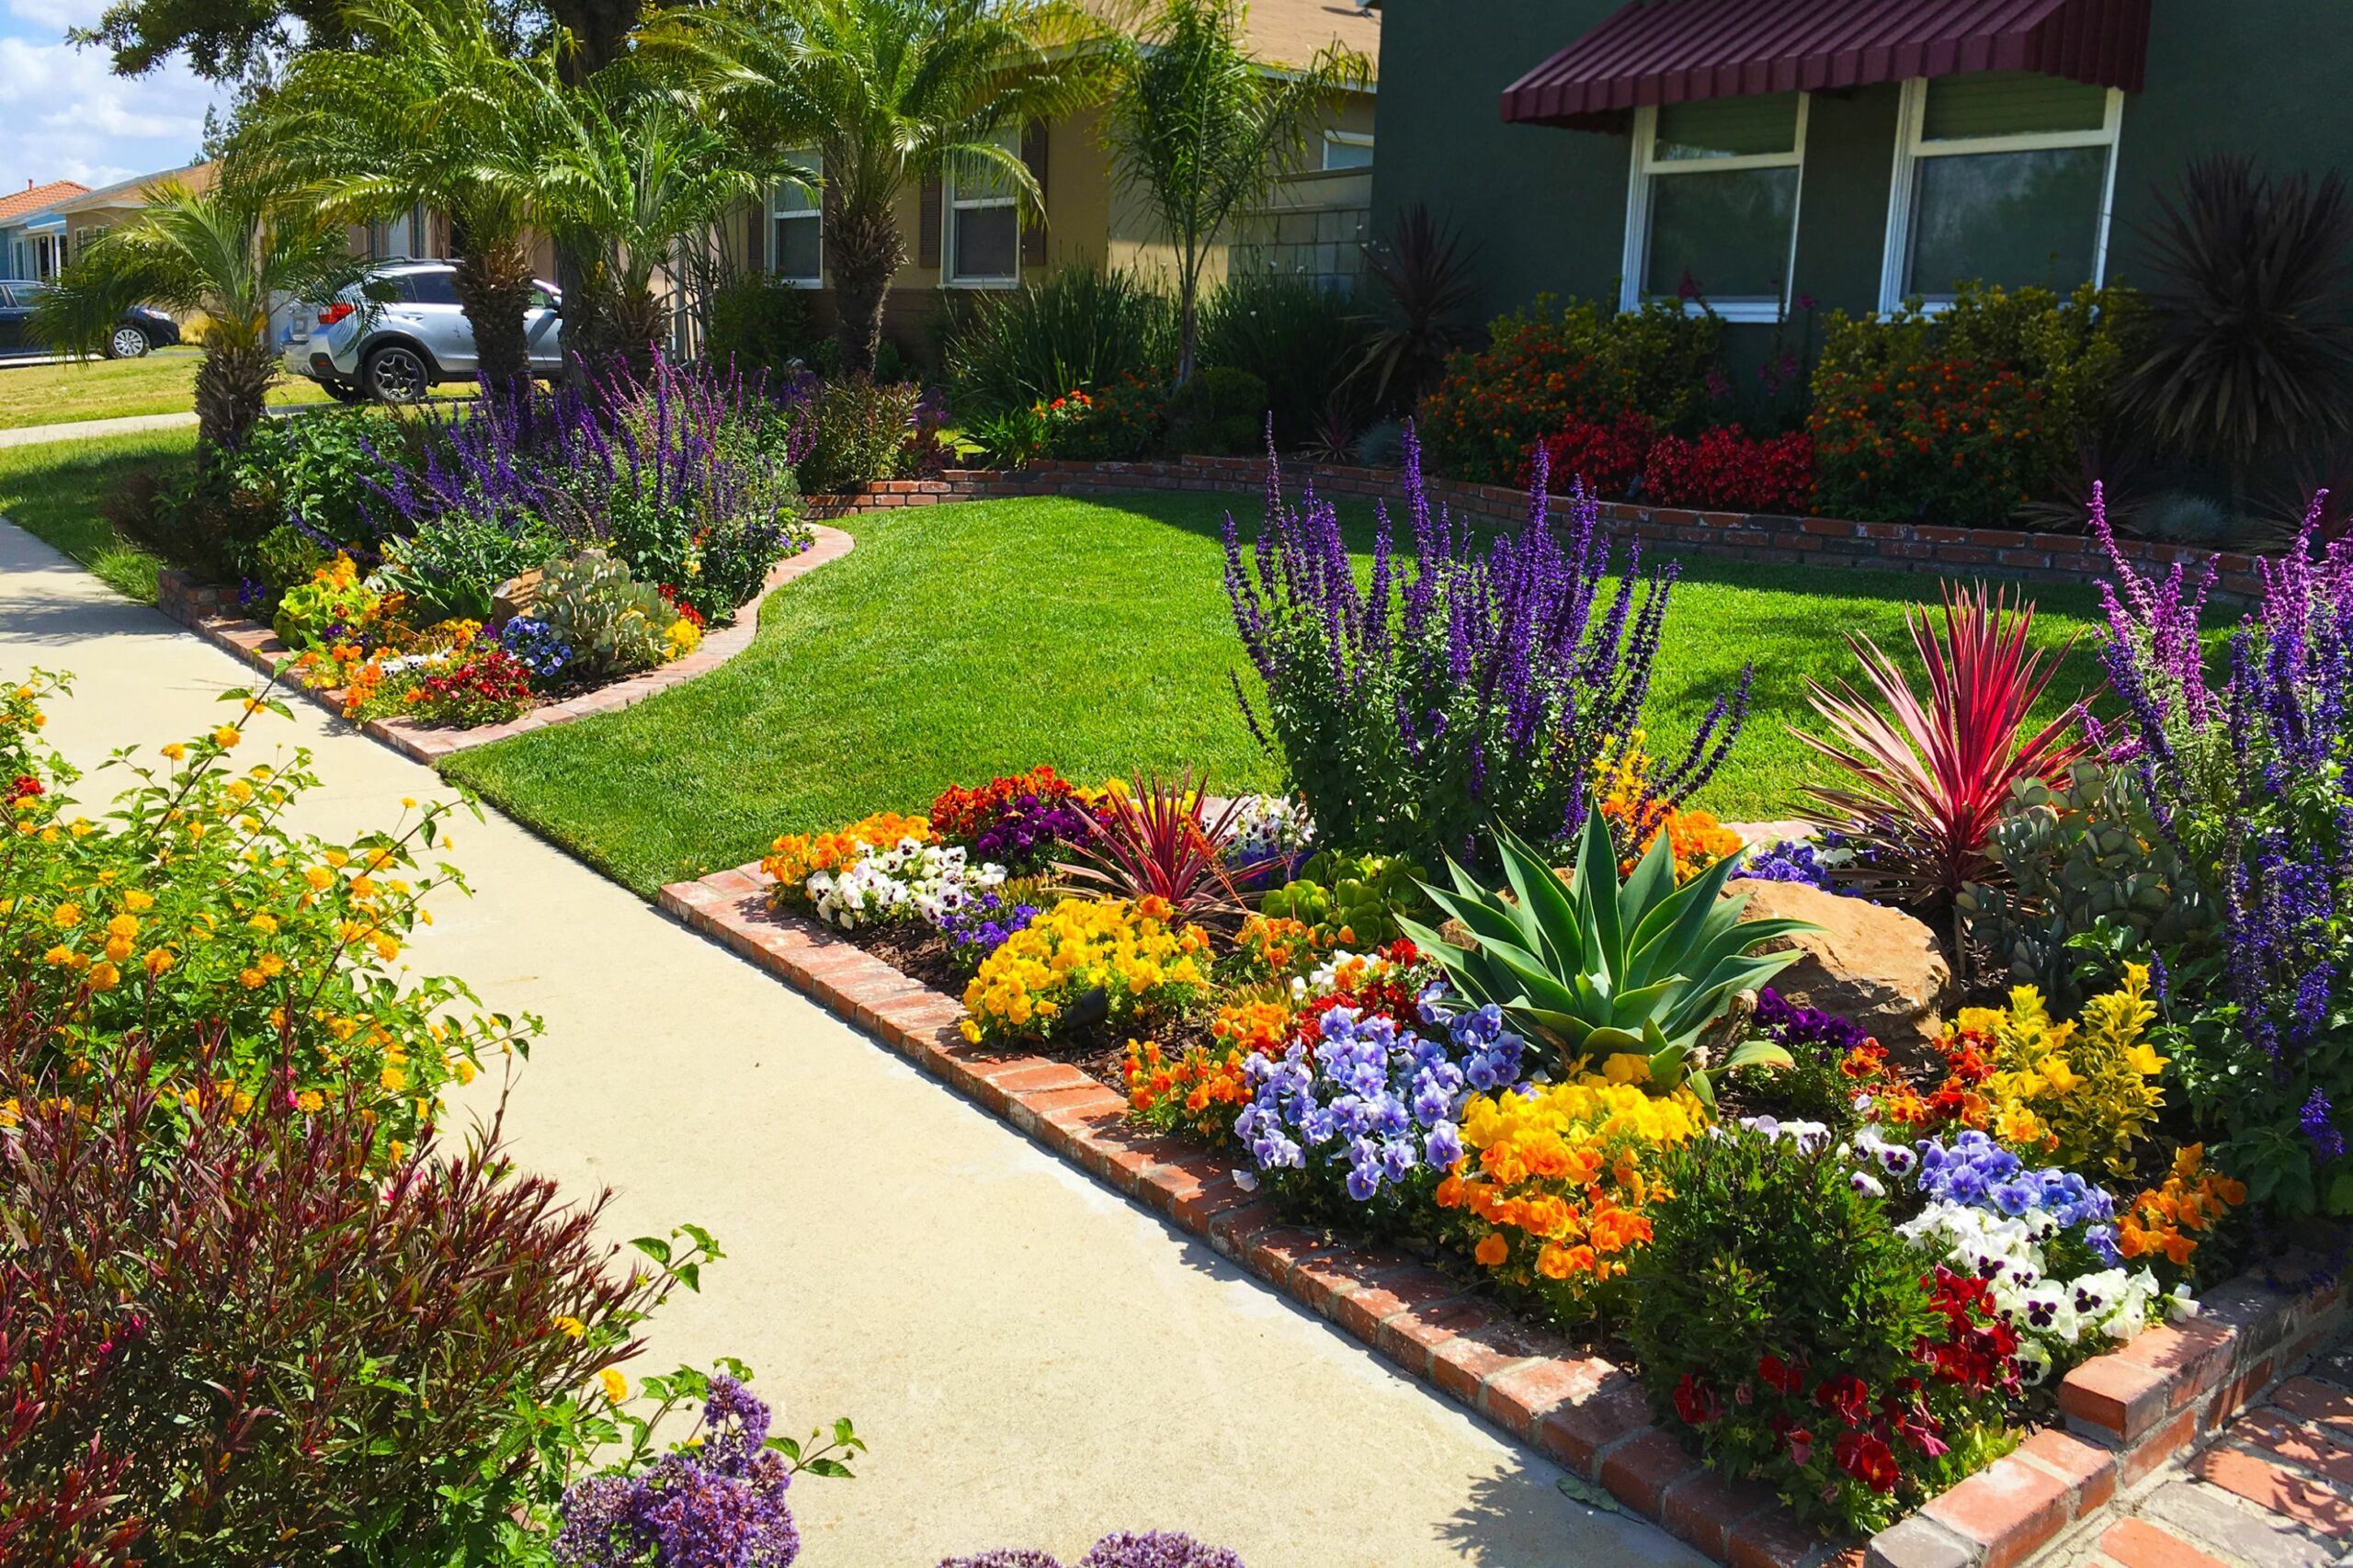 Front Yard Landscaping Ideas for Curb Appeal | HouseLogic - garden ideas zone 4